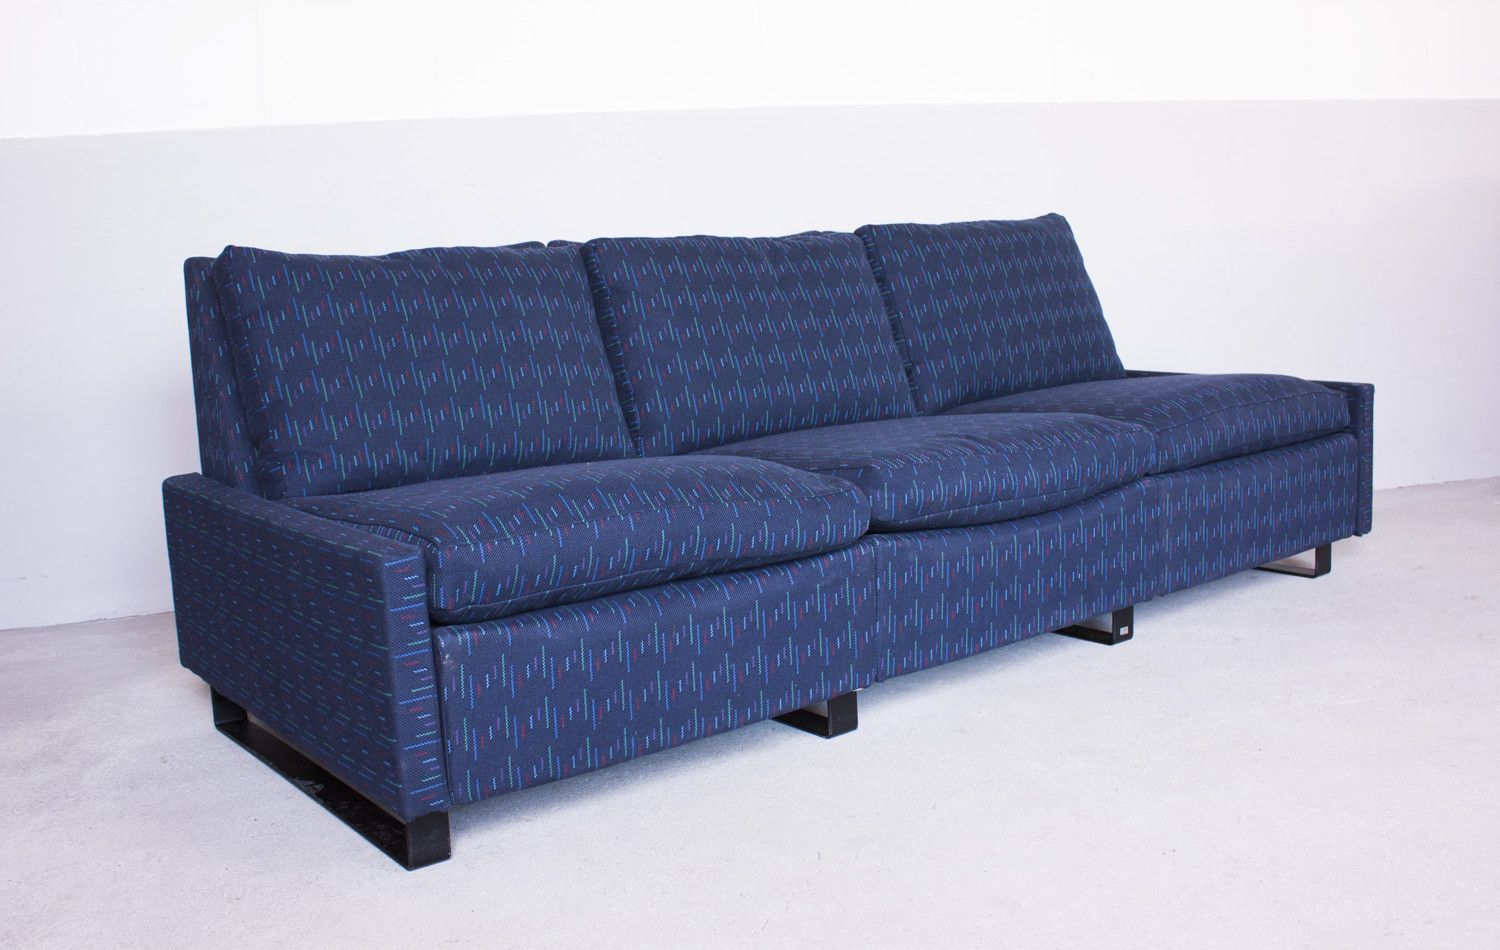 german conseta 3 seater sofa by friedrich wilhelm m ller for cor sitzm bel 1960s for sale at pamono. Black Bedroom Furniture Sets. Home Design Ideas